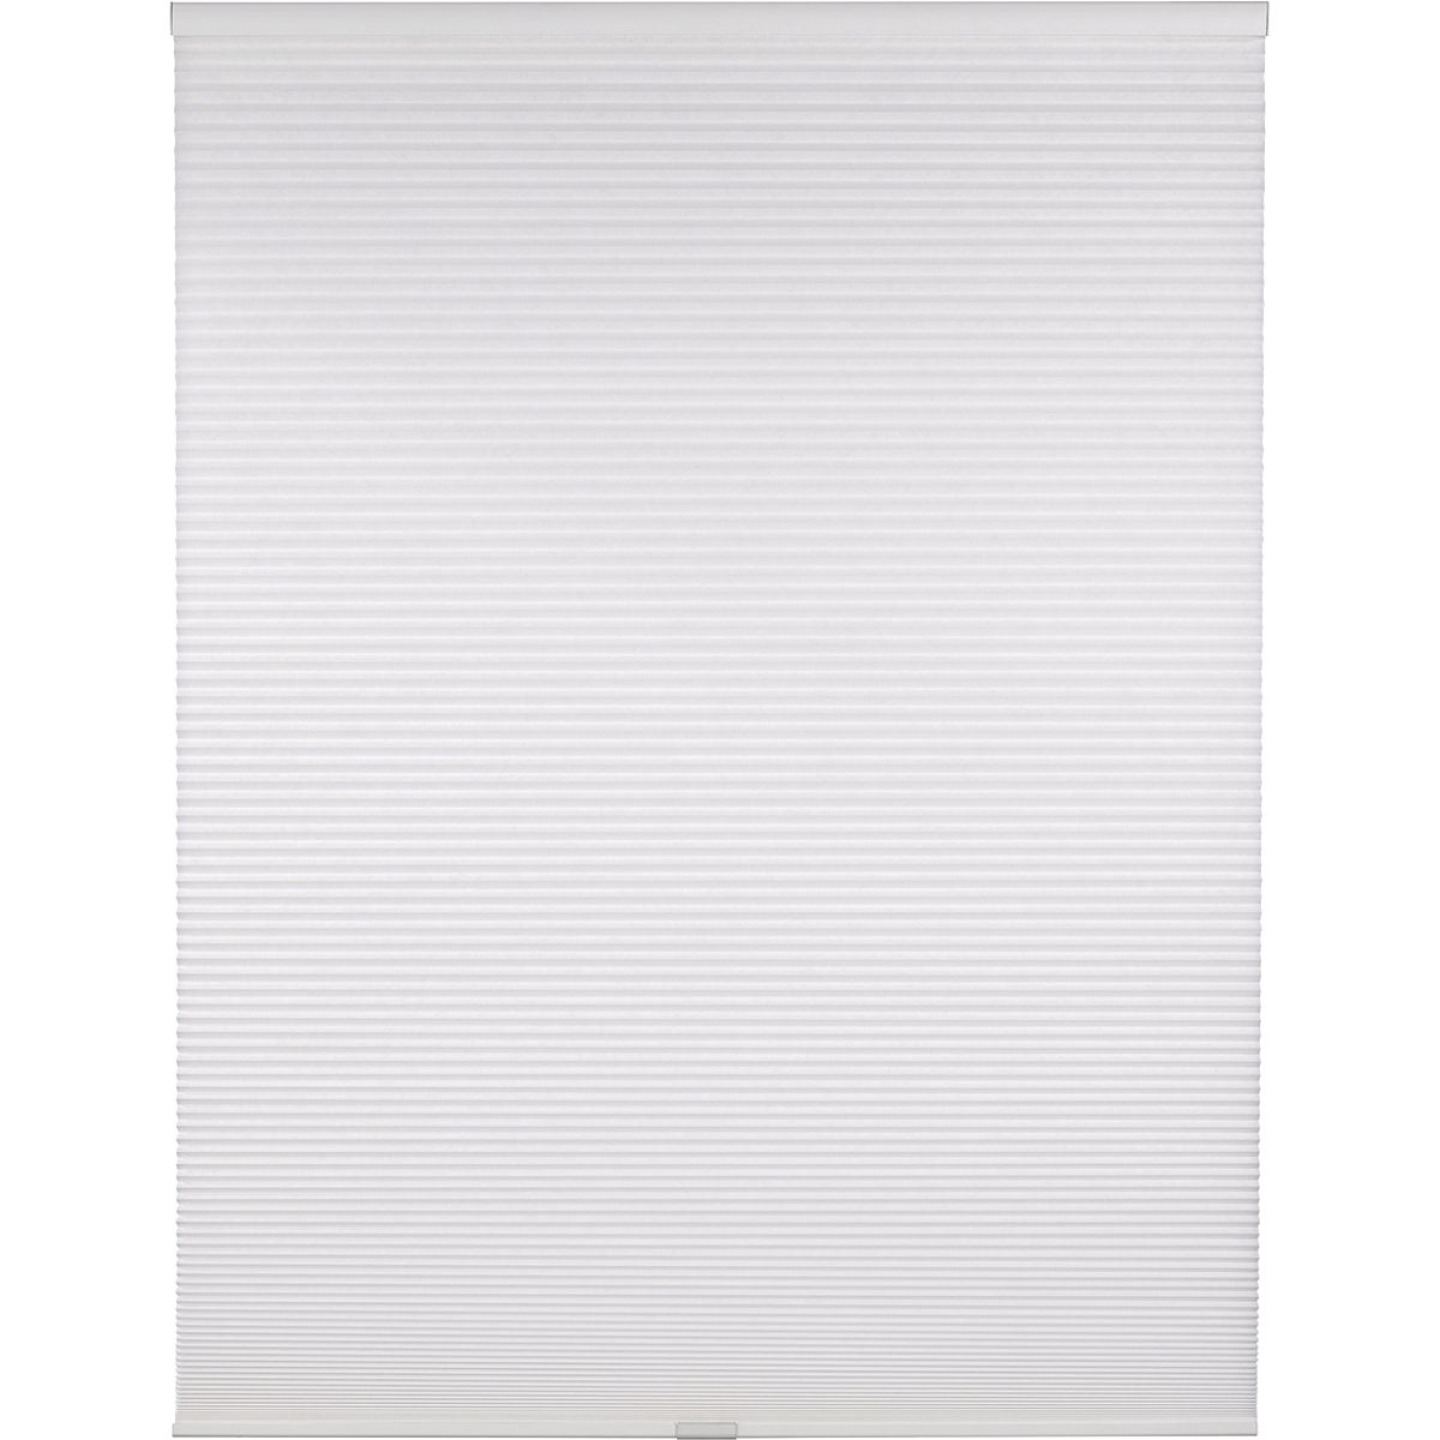 Home Impressions 1 In. Light Filtering Cellular White 34 In. x 72 In. Cordless Shade Image 1